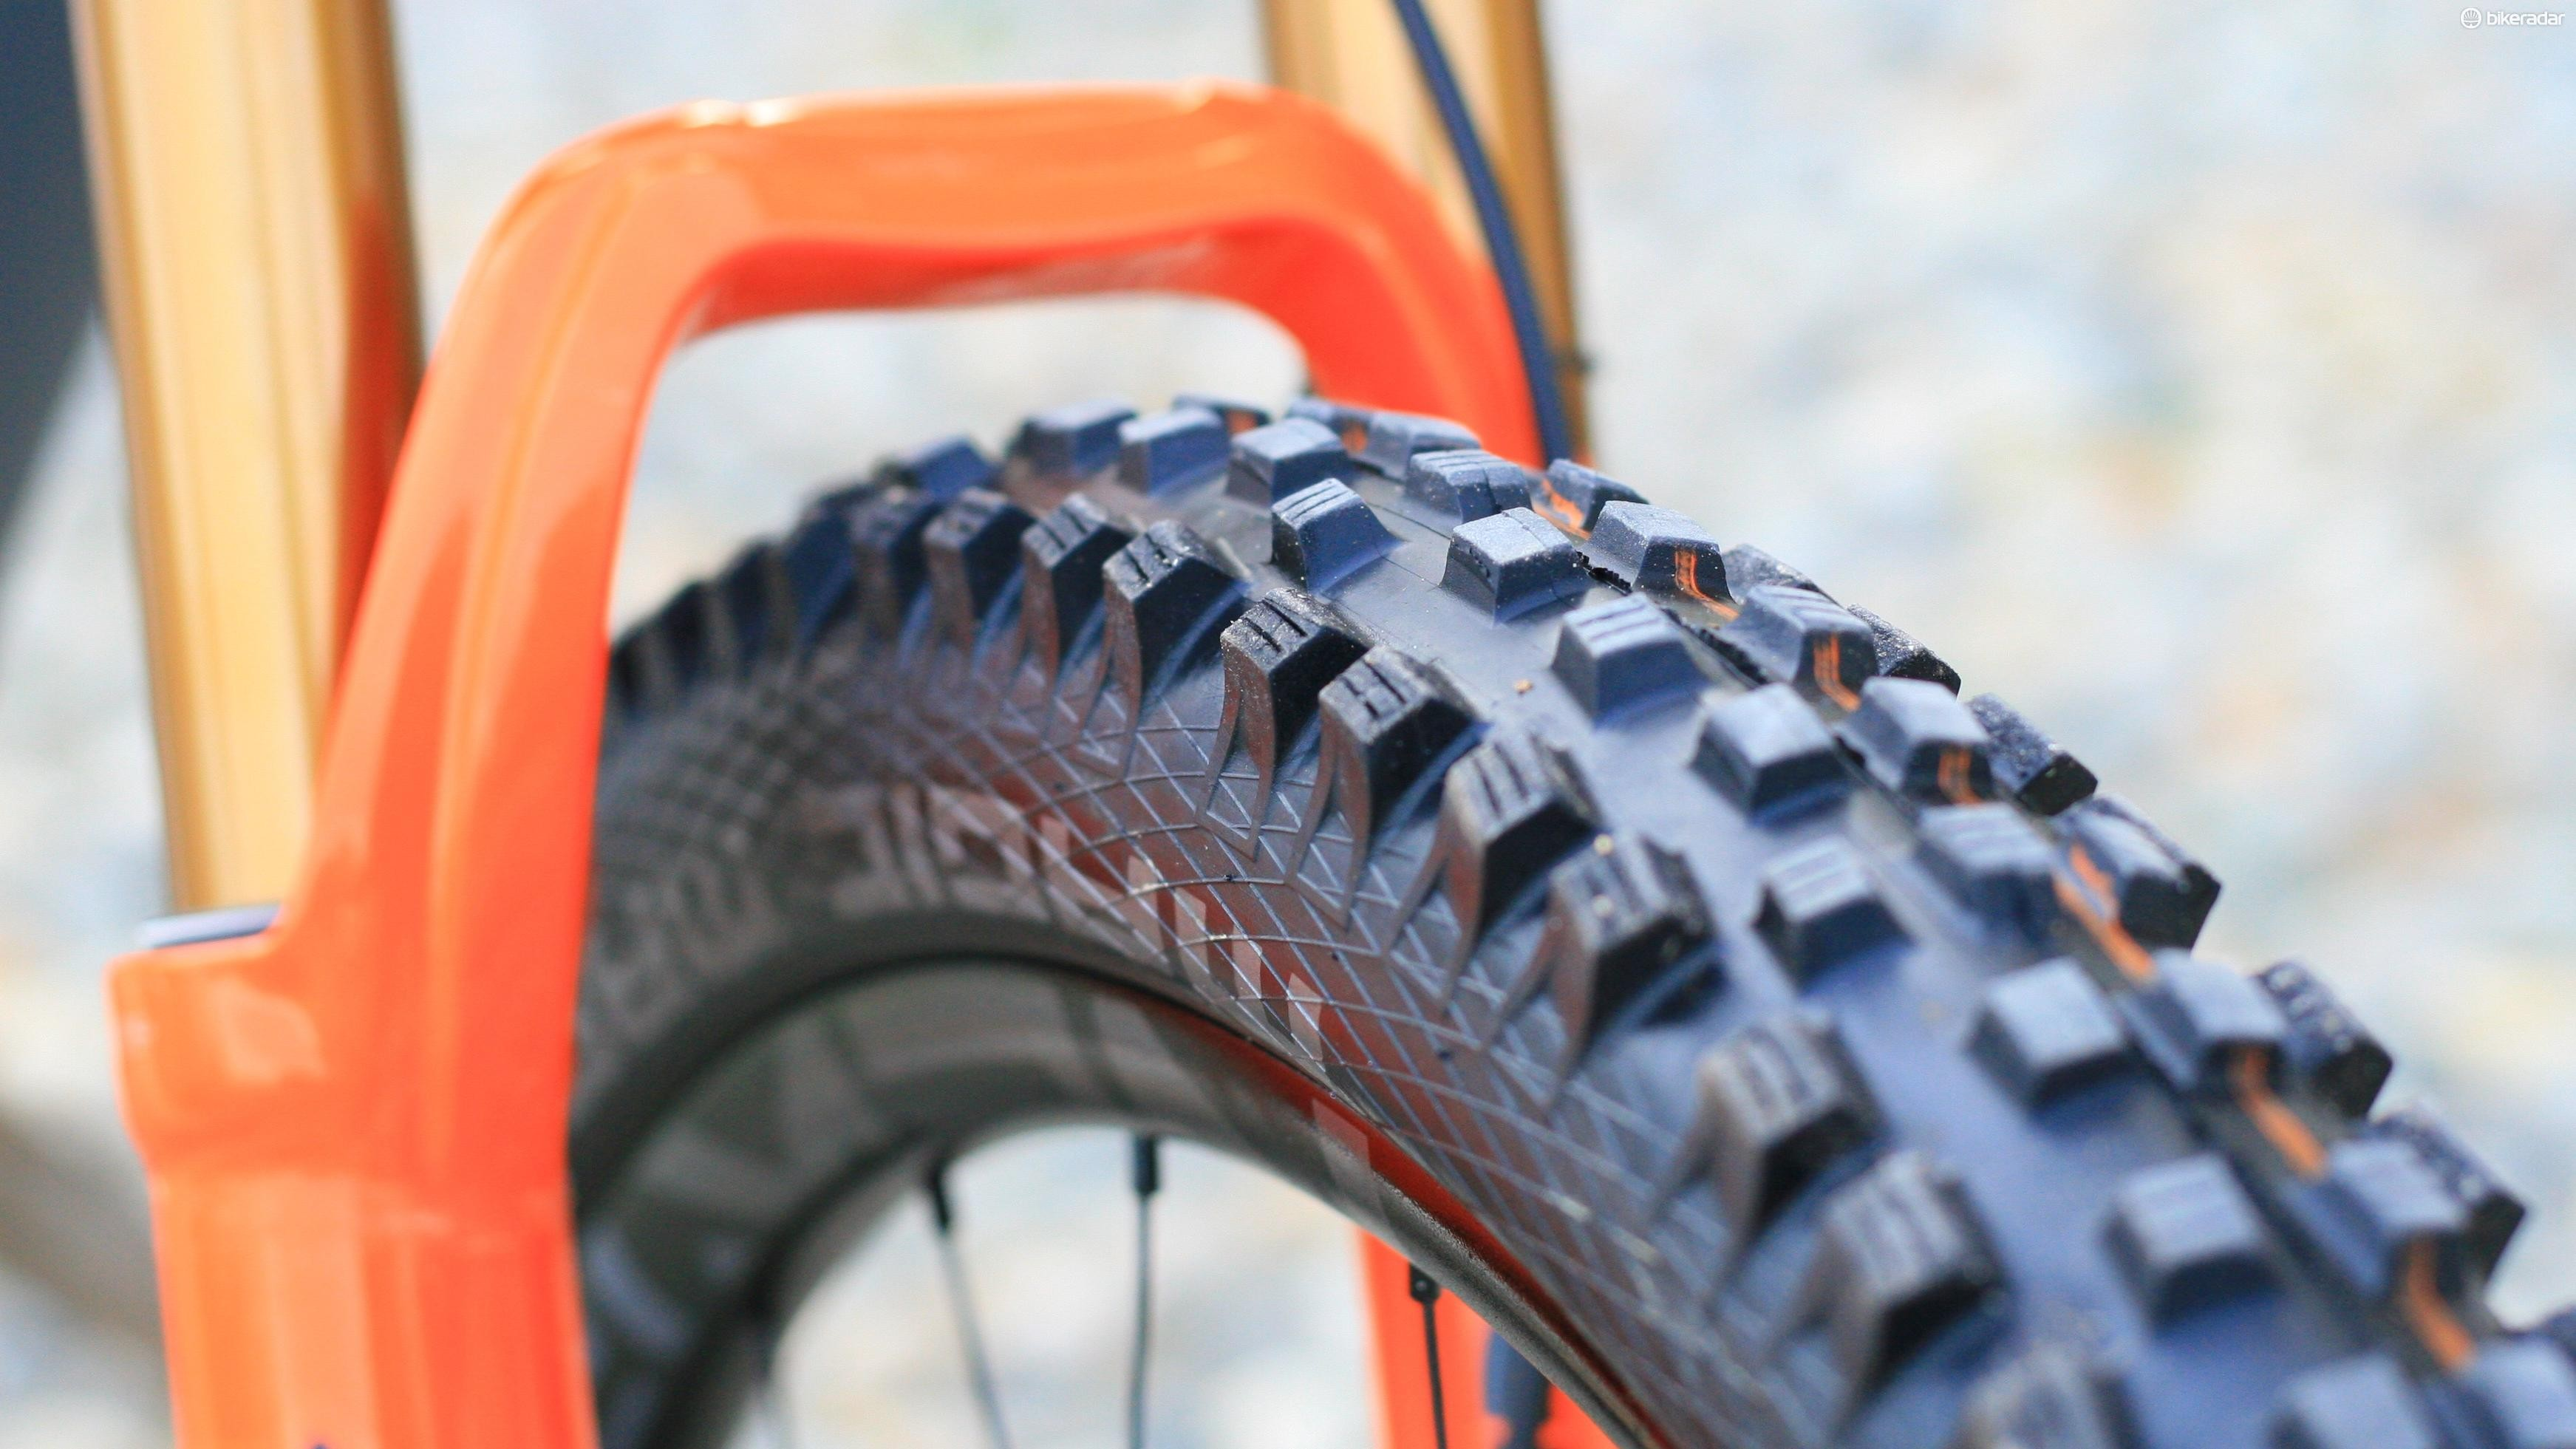 Soft compound Magic Marys up front are a sensible choice